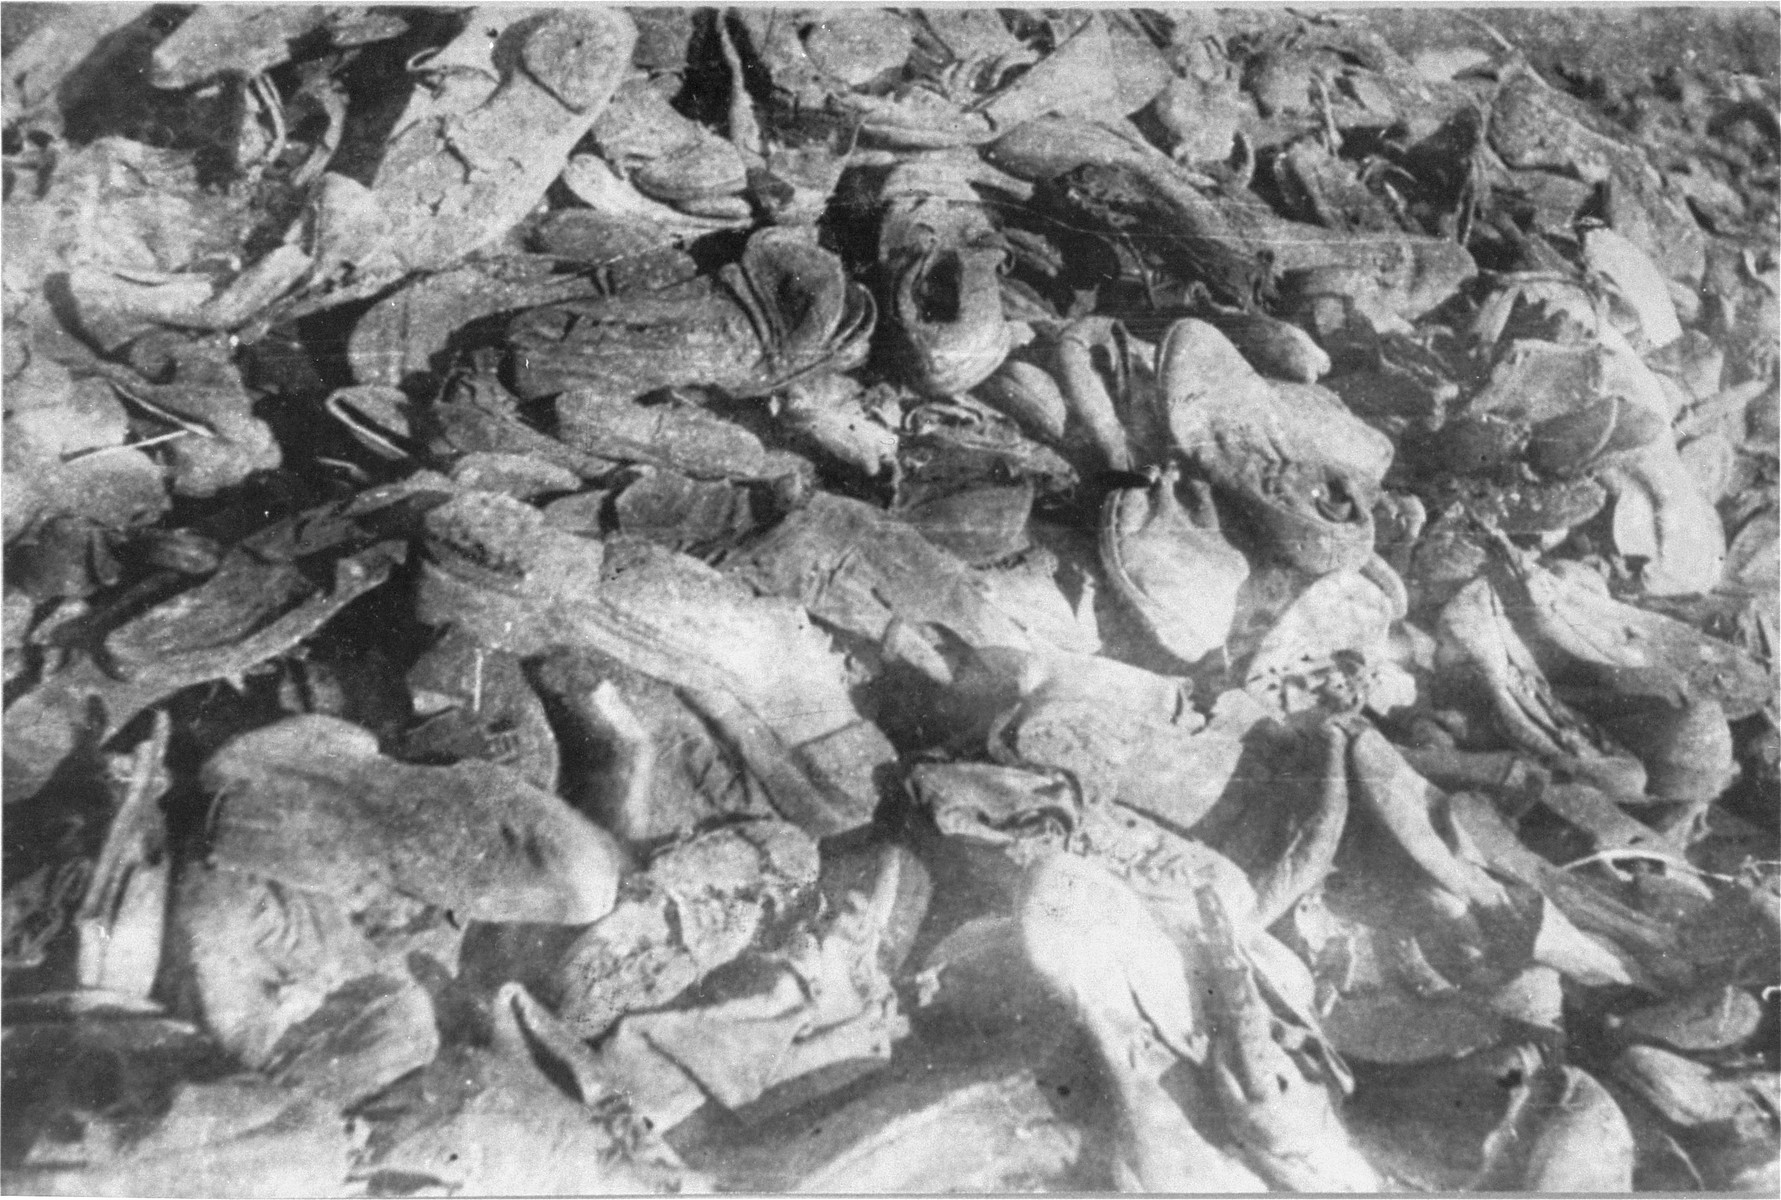 Piles of prisoners' shoes found the Janowska concentration camp by the Red Army.